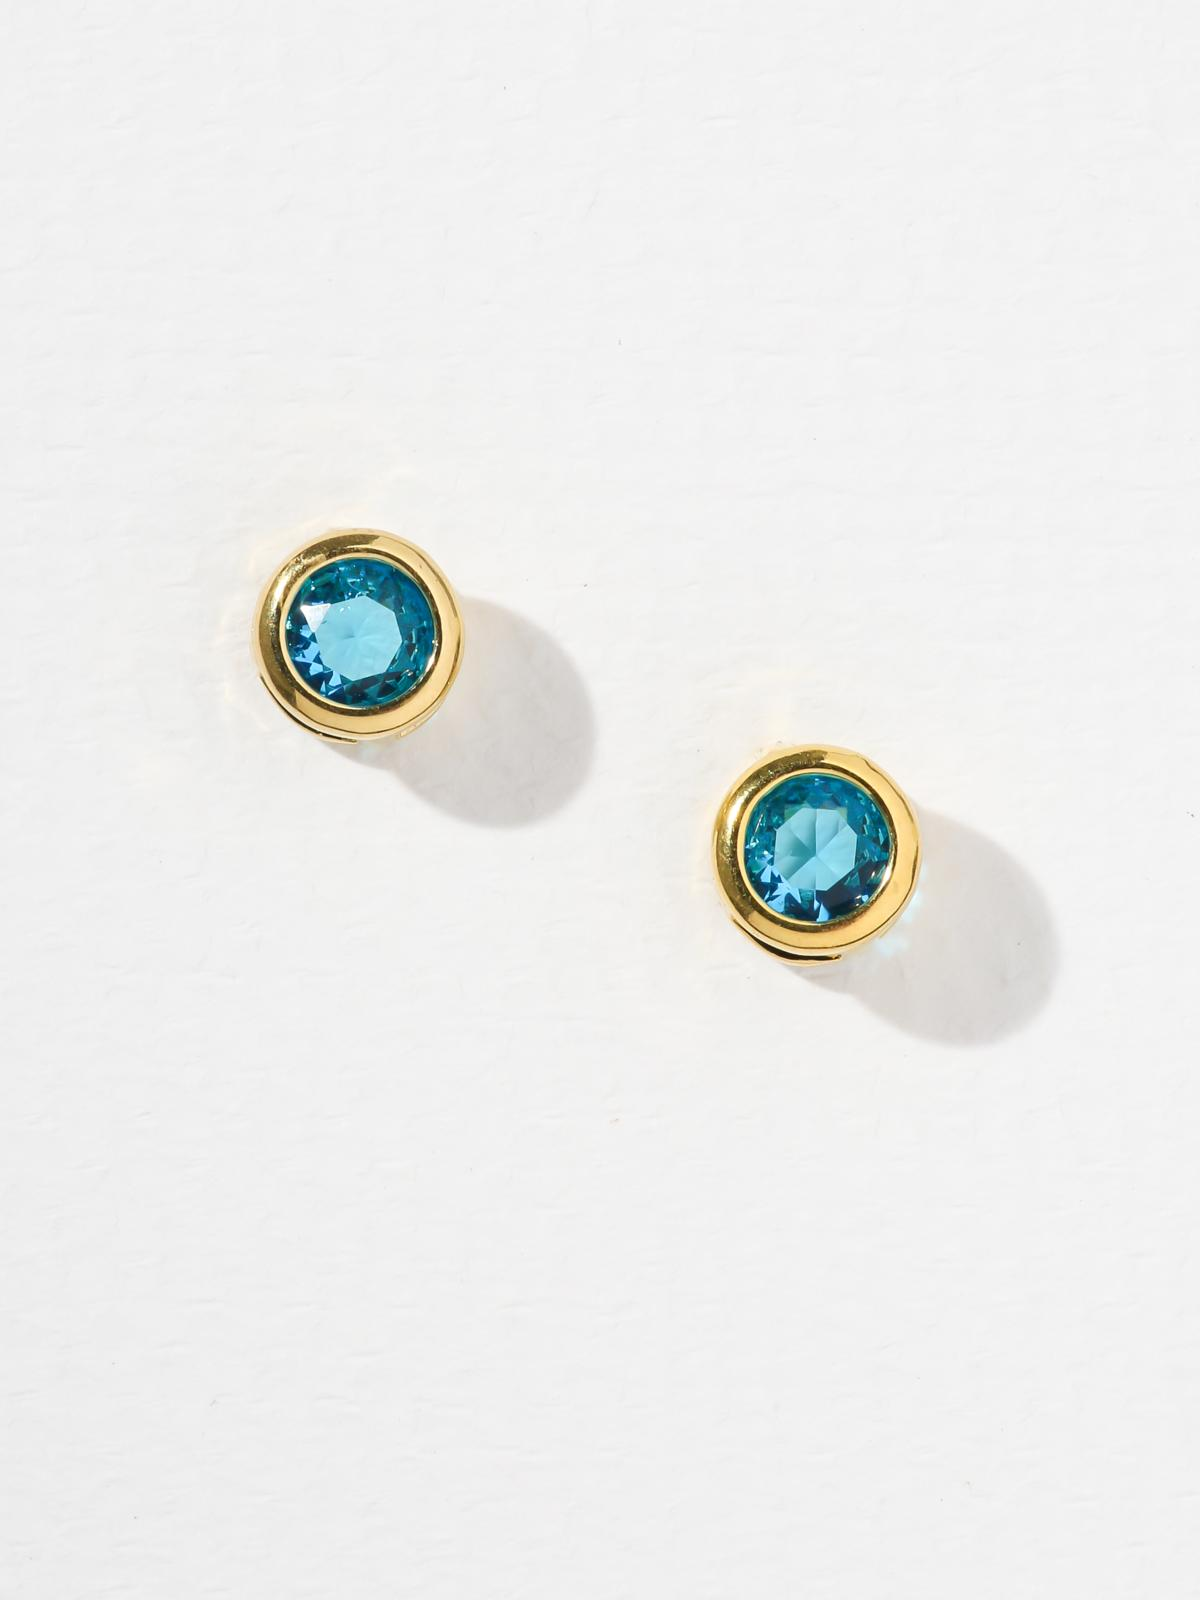 The Bardot Aqua Earrings